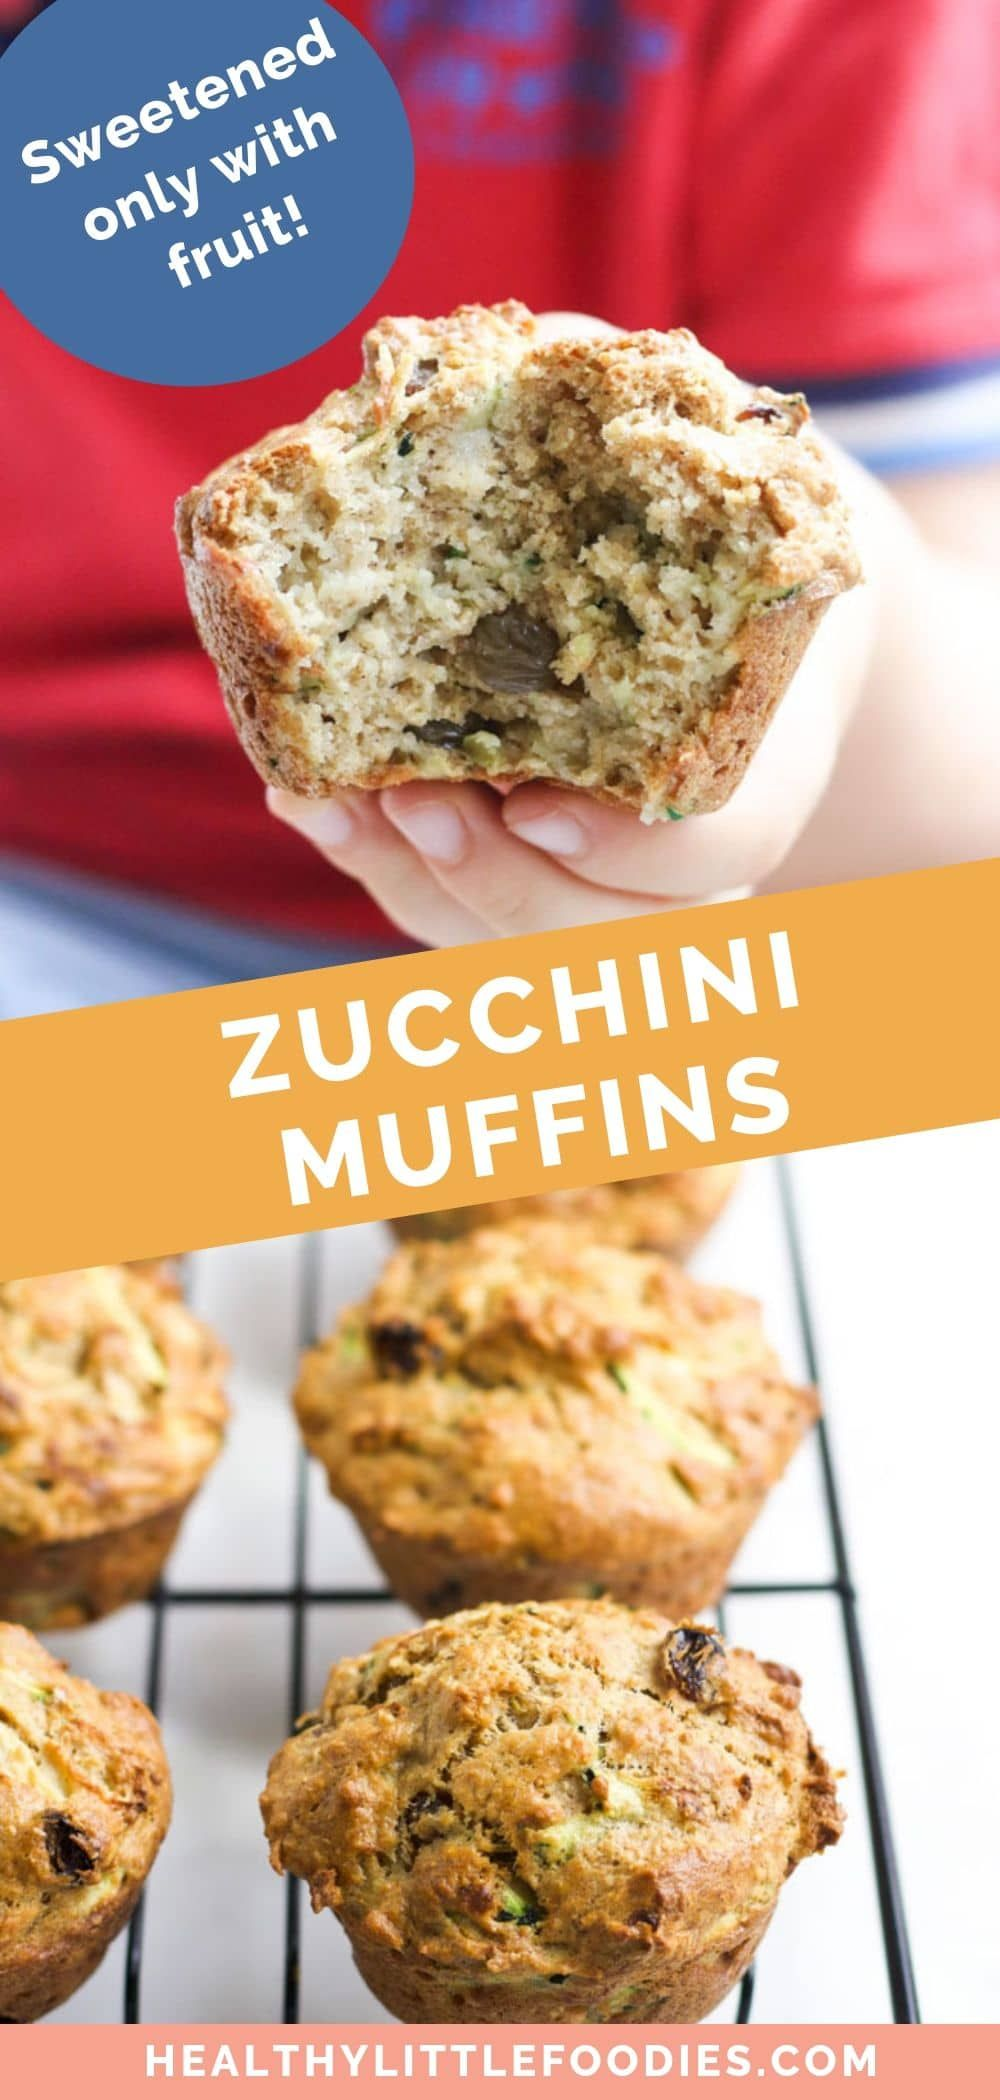 Vegetable Savoury Muffins Healthy Little Foodies Recipe Zucchini Muffins Baby Food Recipes Zucchini Muffins Healthy